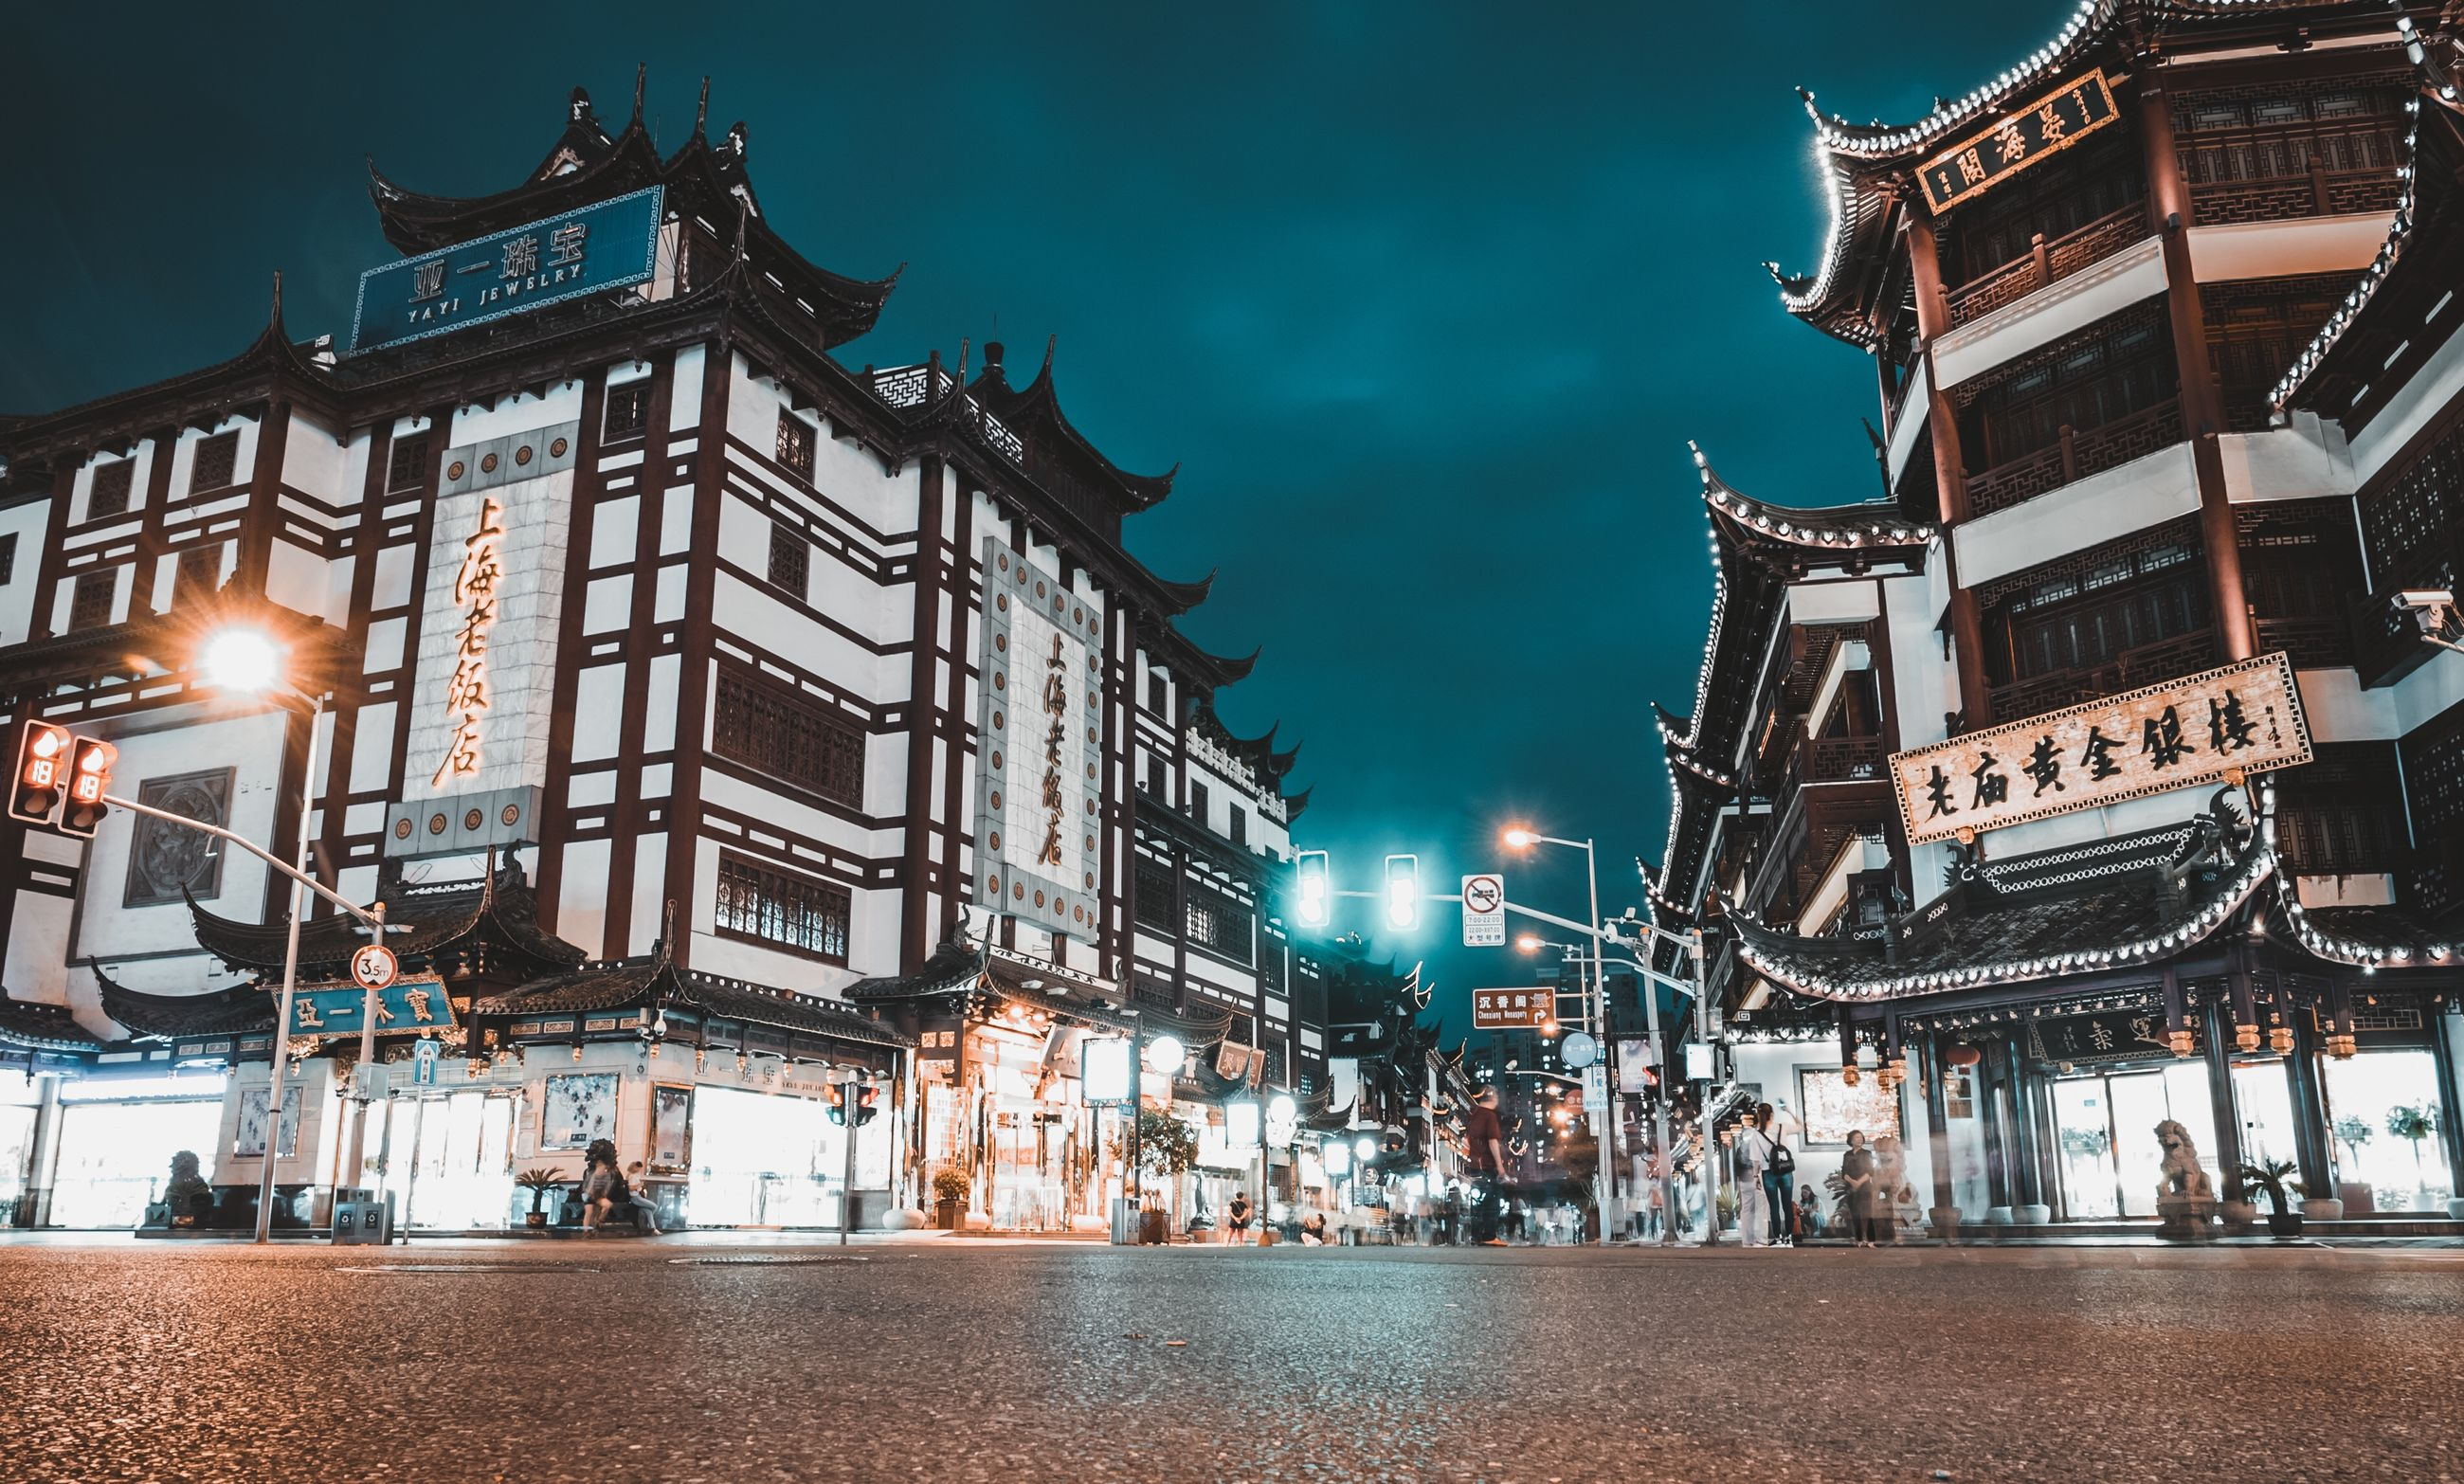 building exterior, architecture, built structure, illuminated, night, city, building, sky, street, incidental people, lighting equipment, nature, residential district, dusk, street light, travel destinations, outdoors, glowing, window, light, nightlife